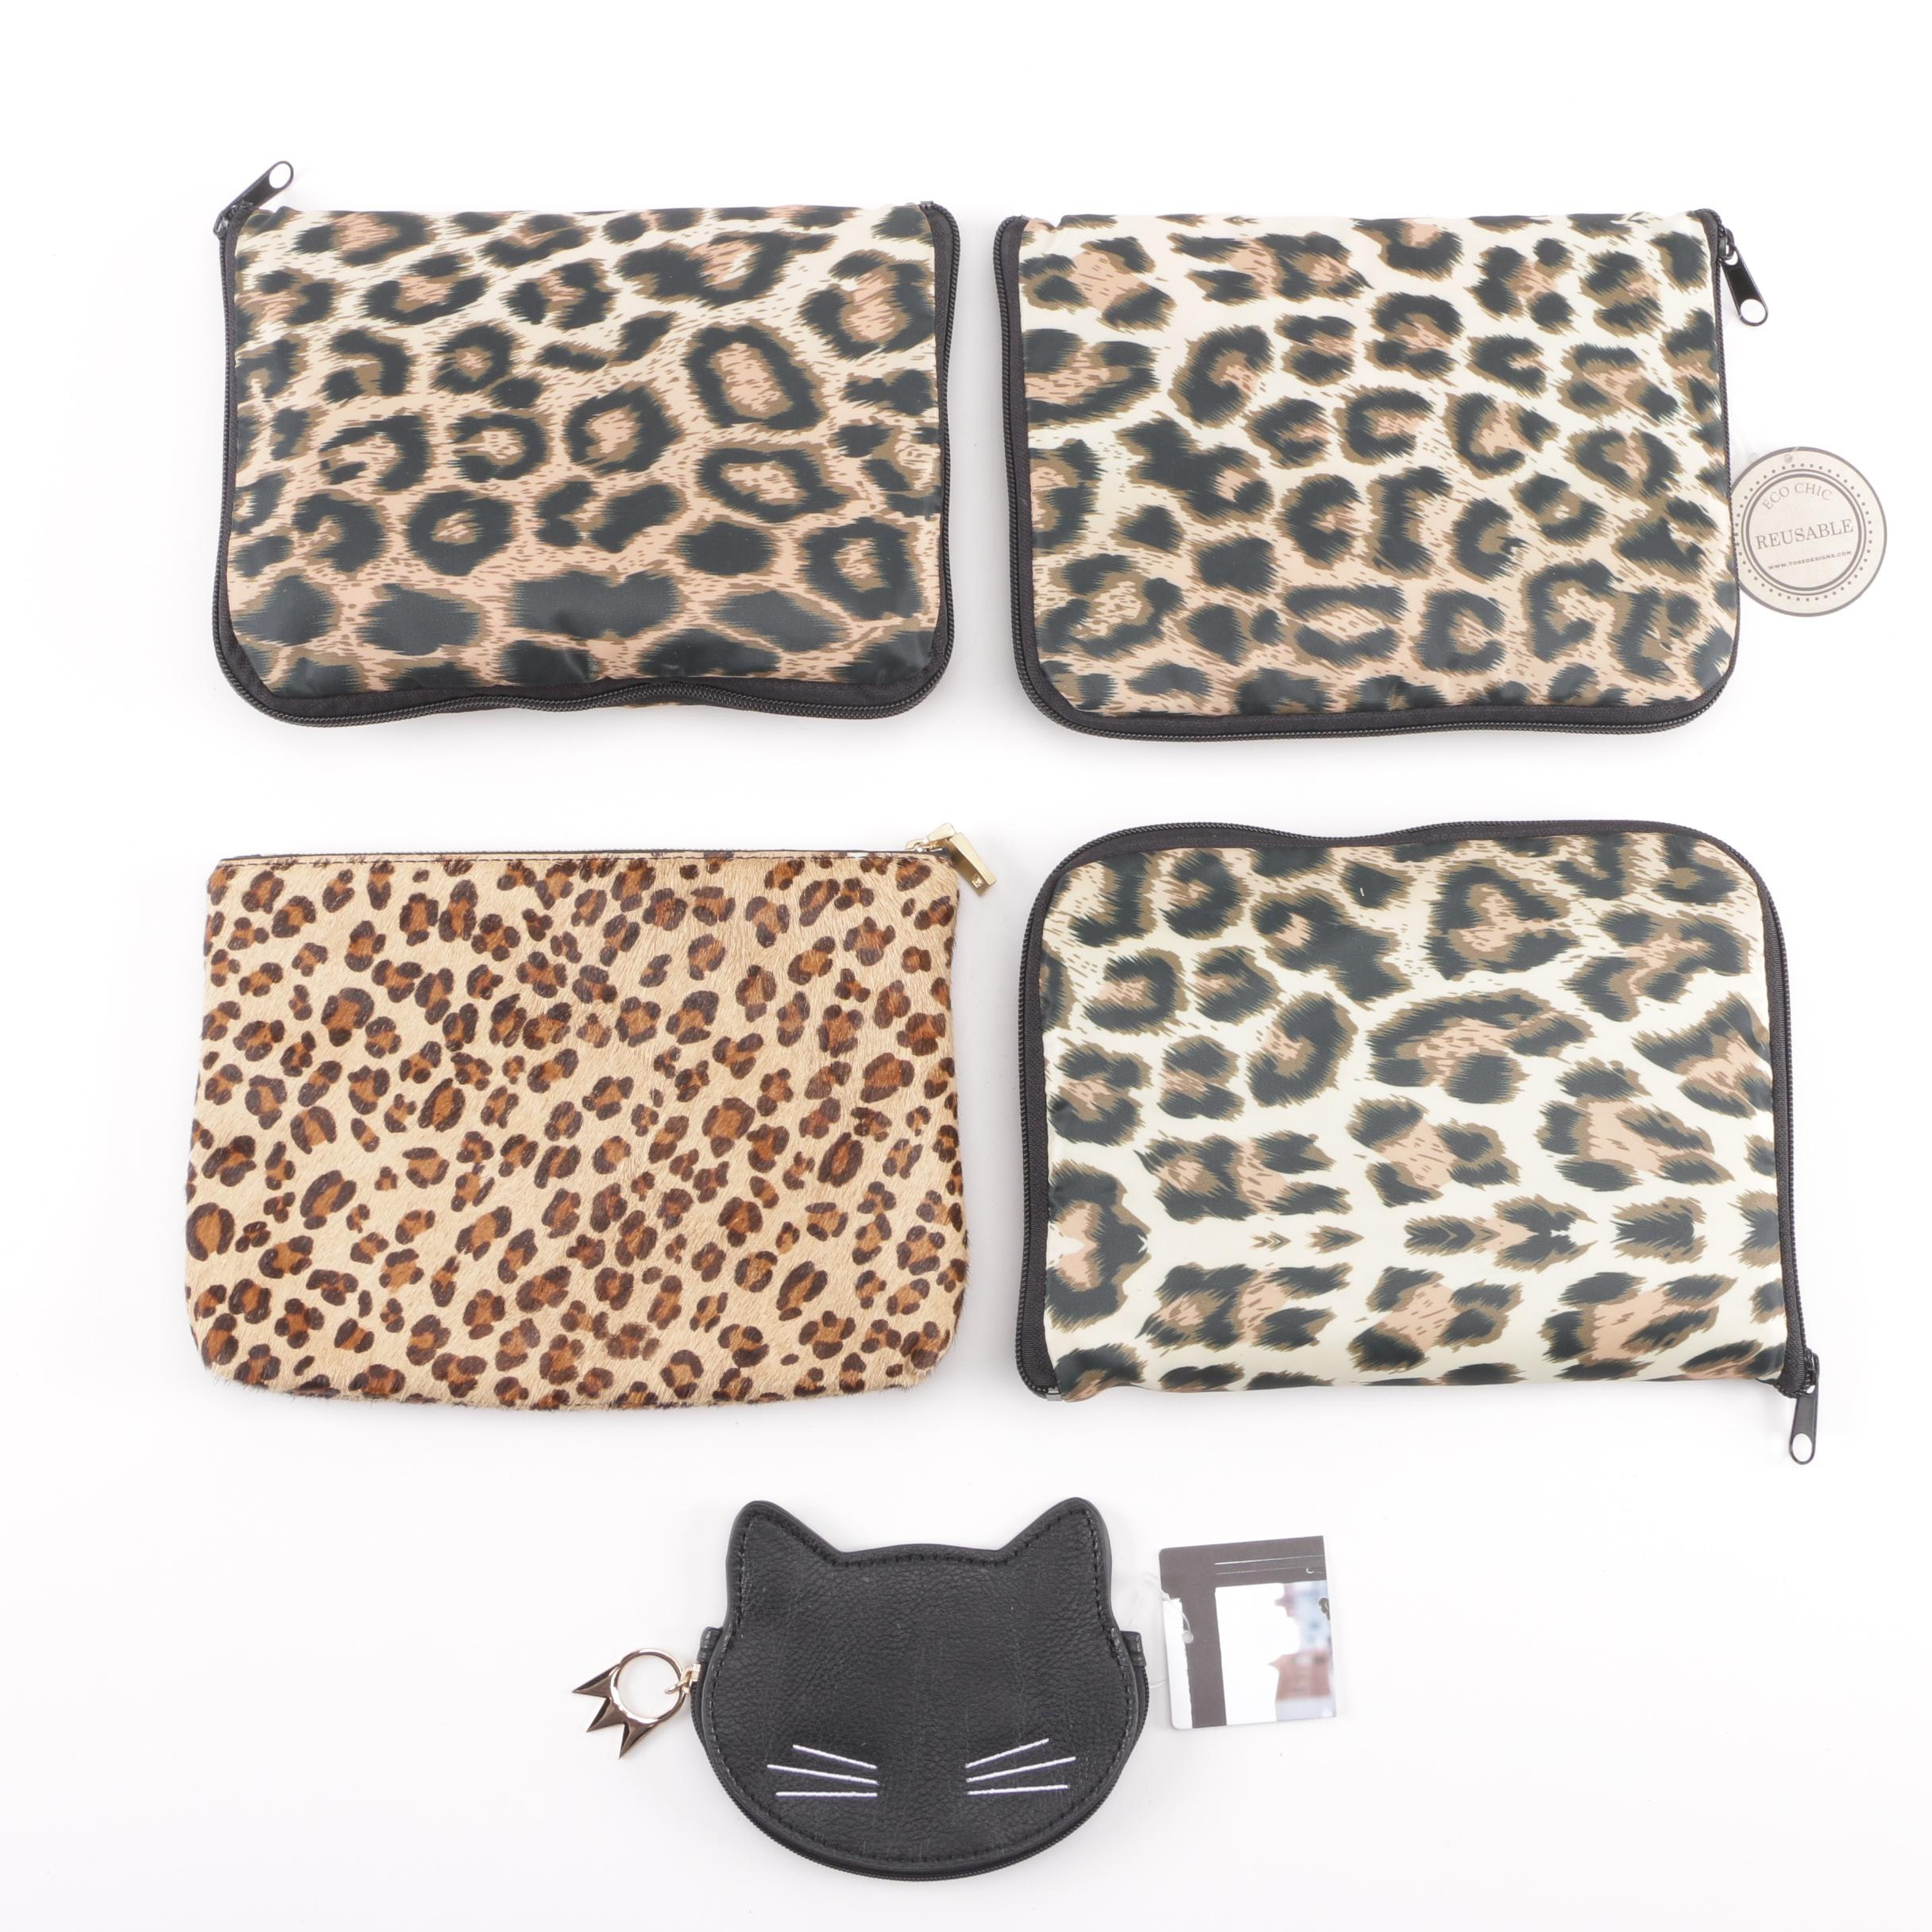 Cheetah Print Pouch, Convertible Tote Bags, and Cat Coin Purse Including J. Crew